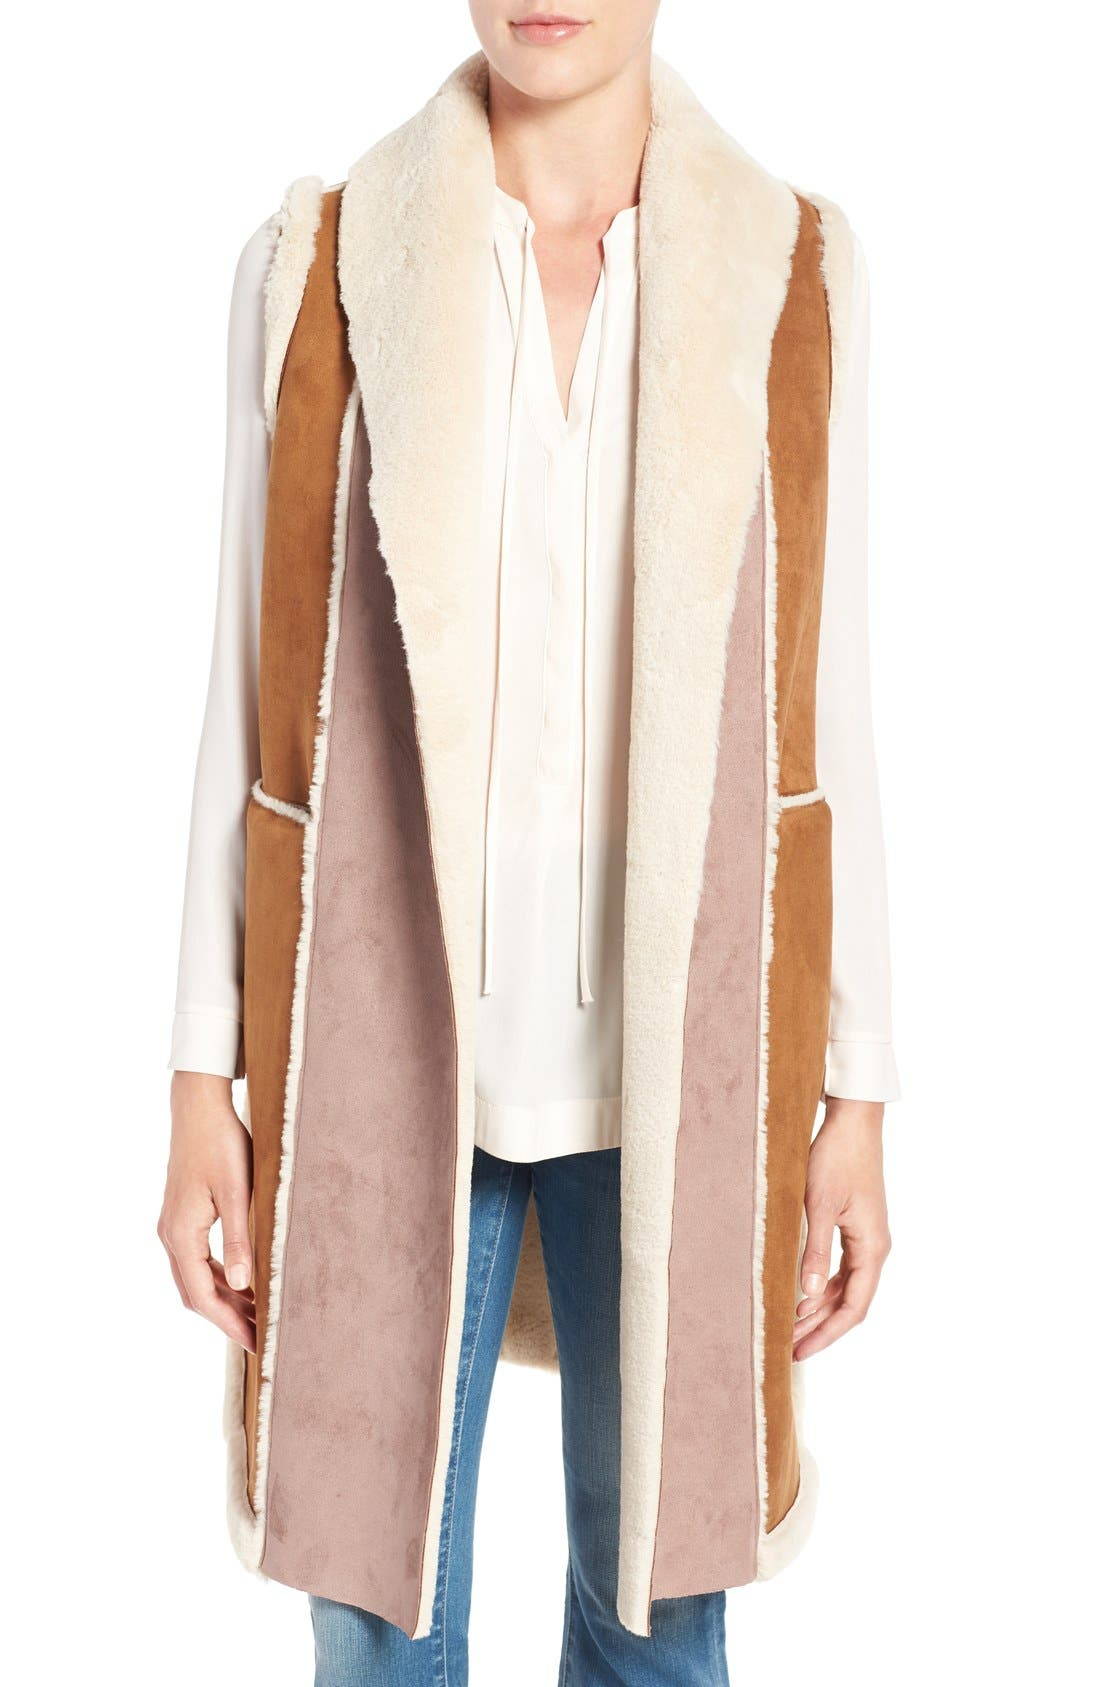 Alternate Image 1 Selected - French Connection Long Faux Shearling Vest